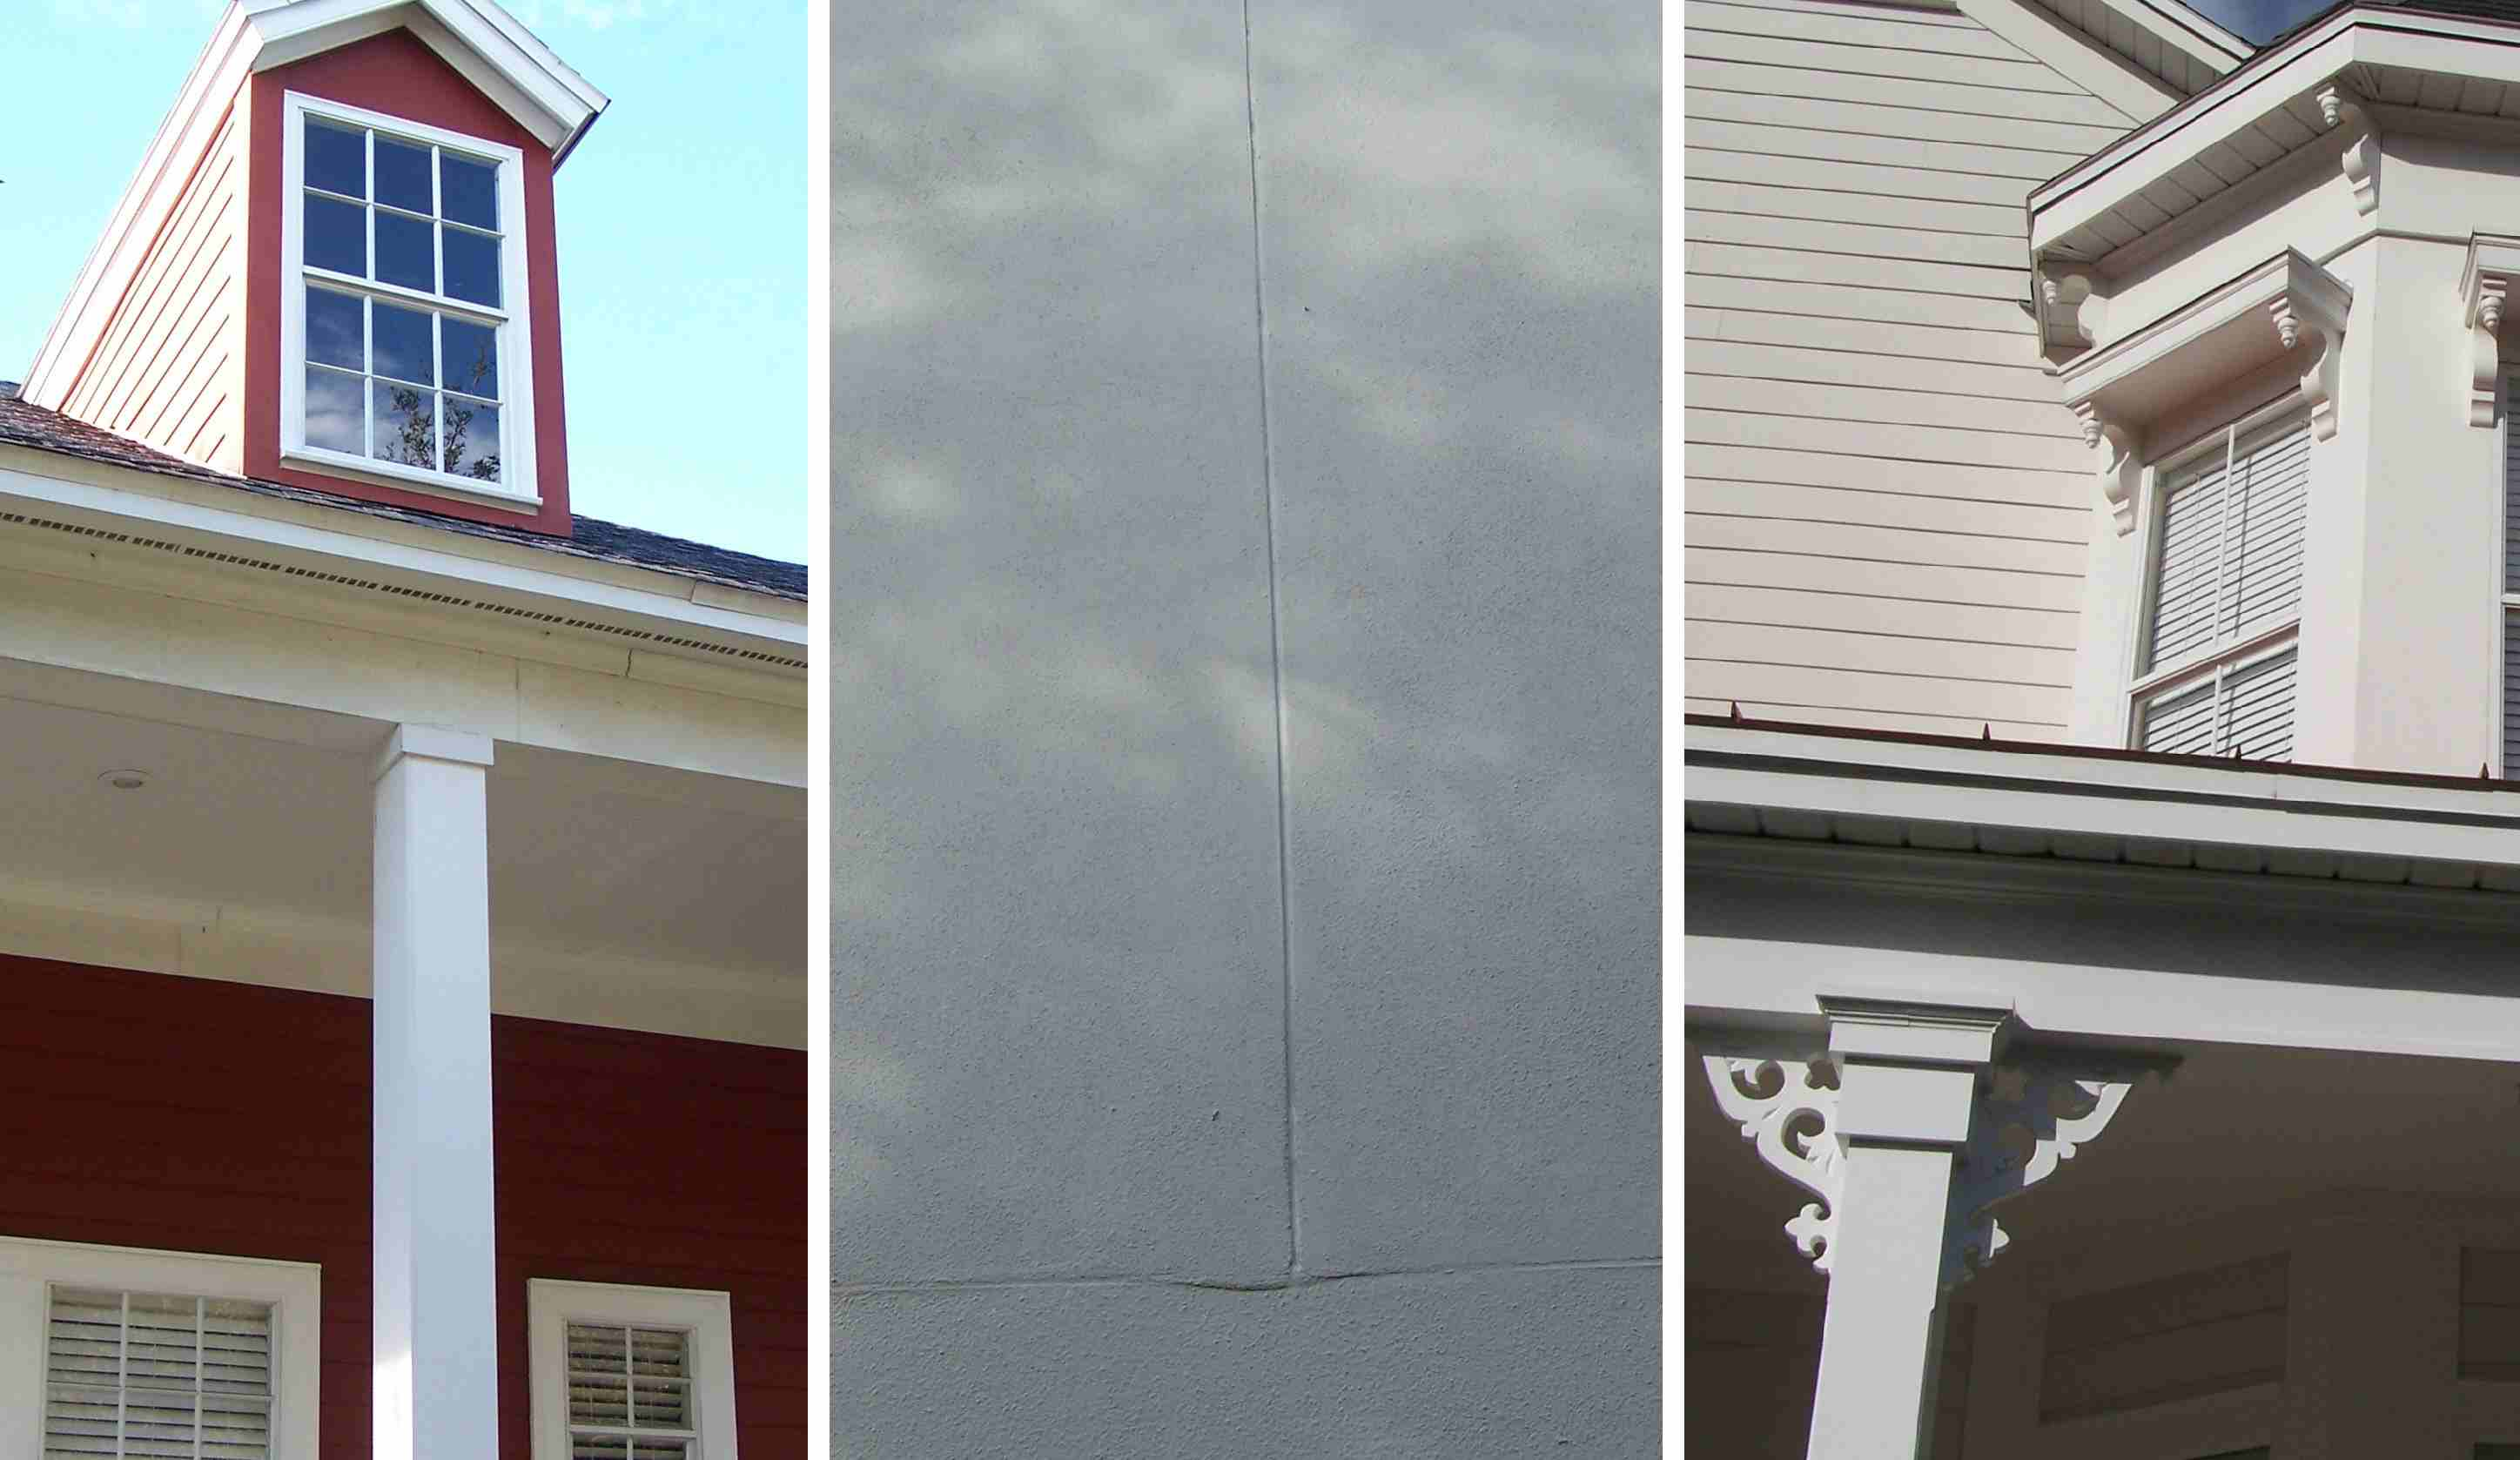 Three photos of house details in Celebration, Florida